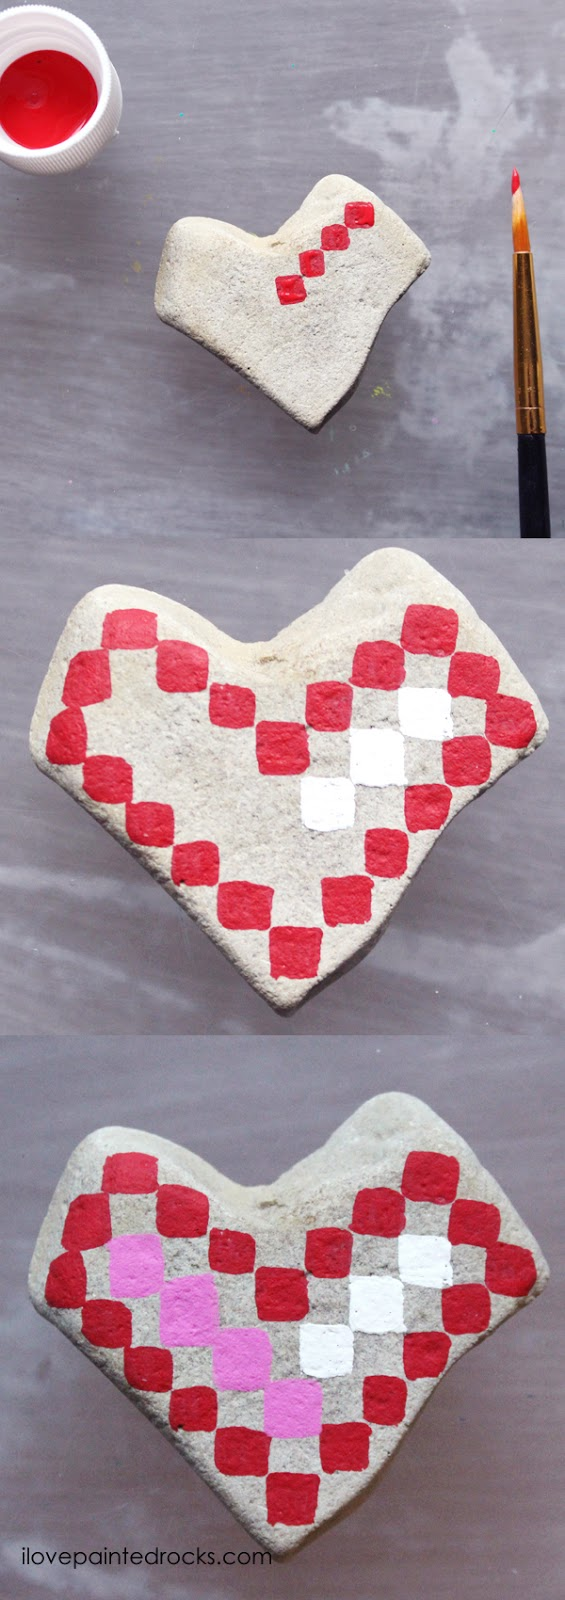 Easy rock painting ideas for Valentine's Day. I love all the painted rock tutorials in this post! Learn how to paint a pixelated heart rock. #ilovepaintedrocks #rockpainting #paintedrocks #valentinescraft #easycraft #kidscraft #rockpaintingideas